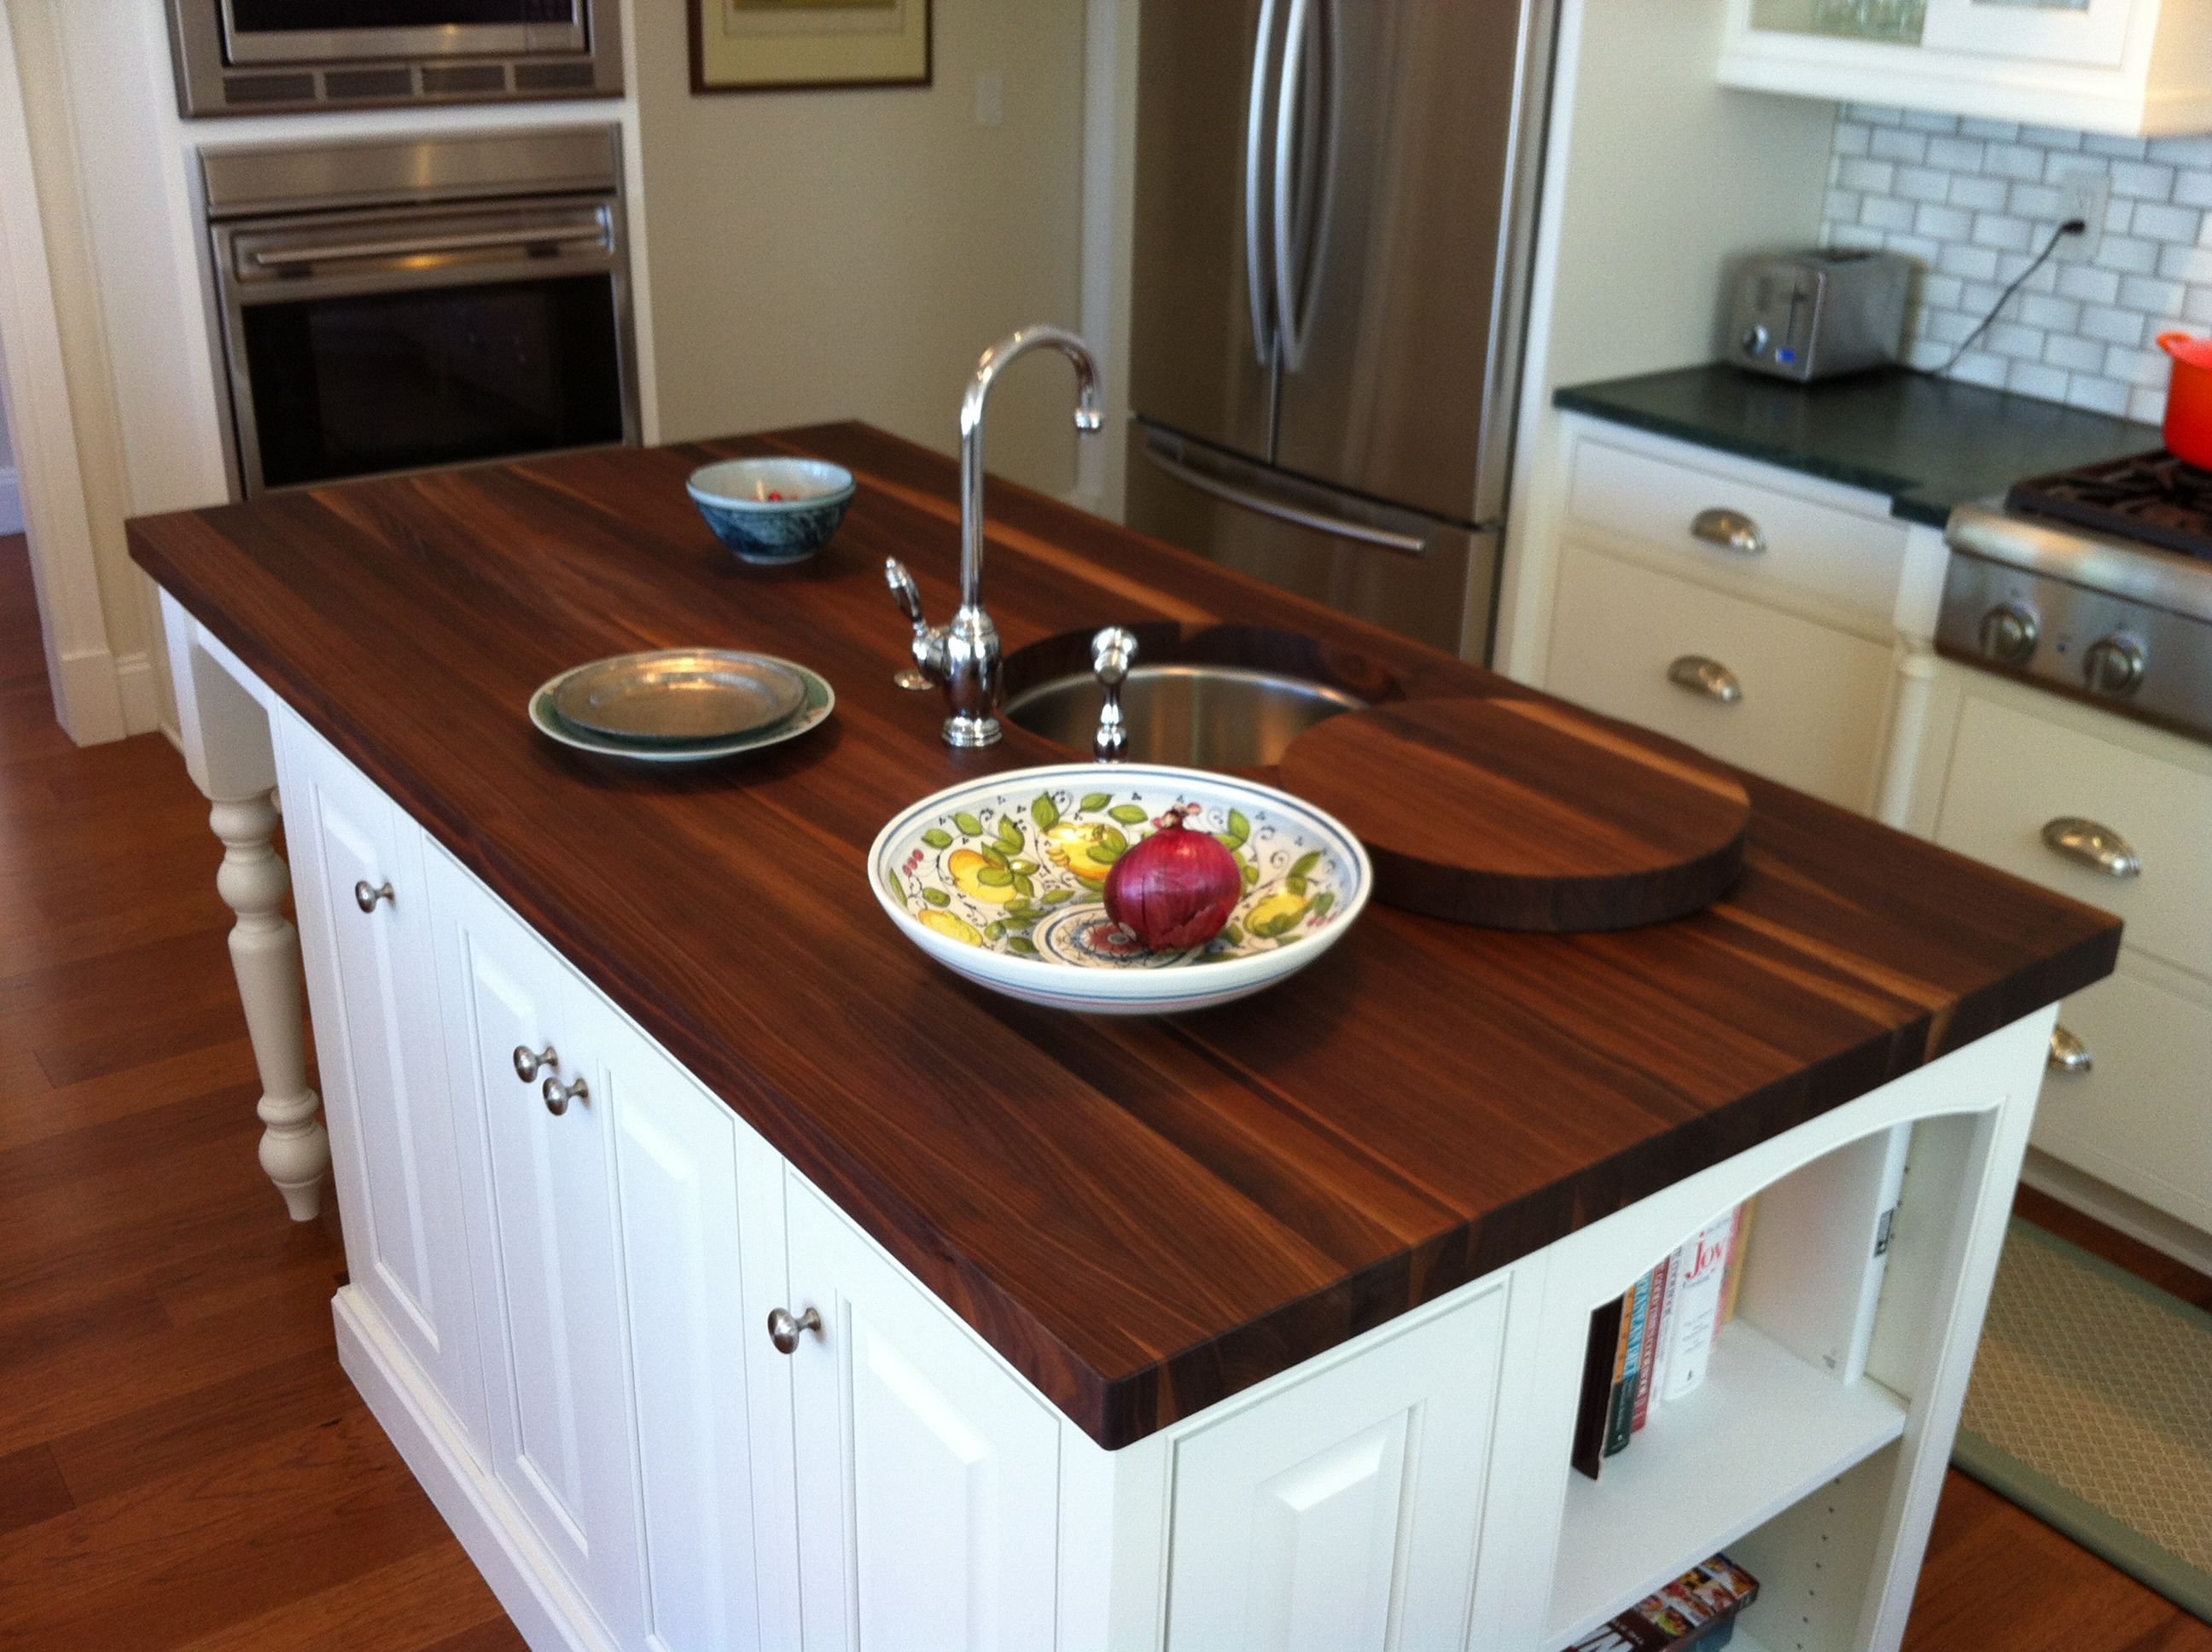 Soapstone Butcher Block Island Kitchen Pinterest Soapstone Countertops Soapstone And